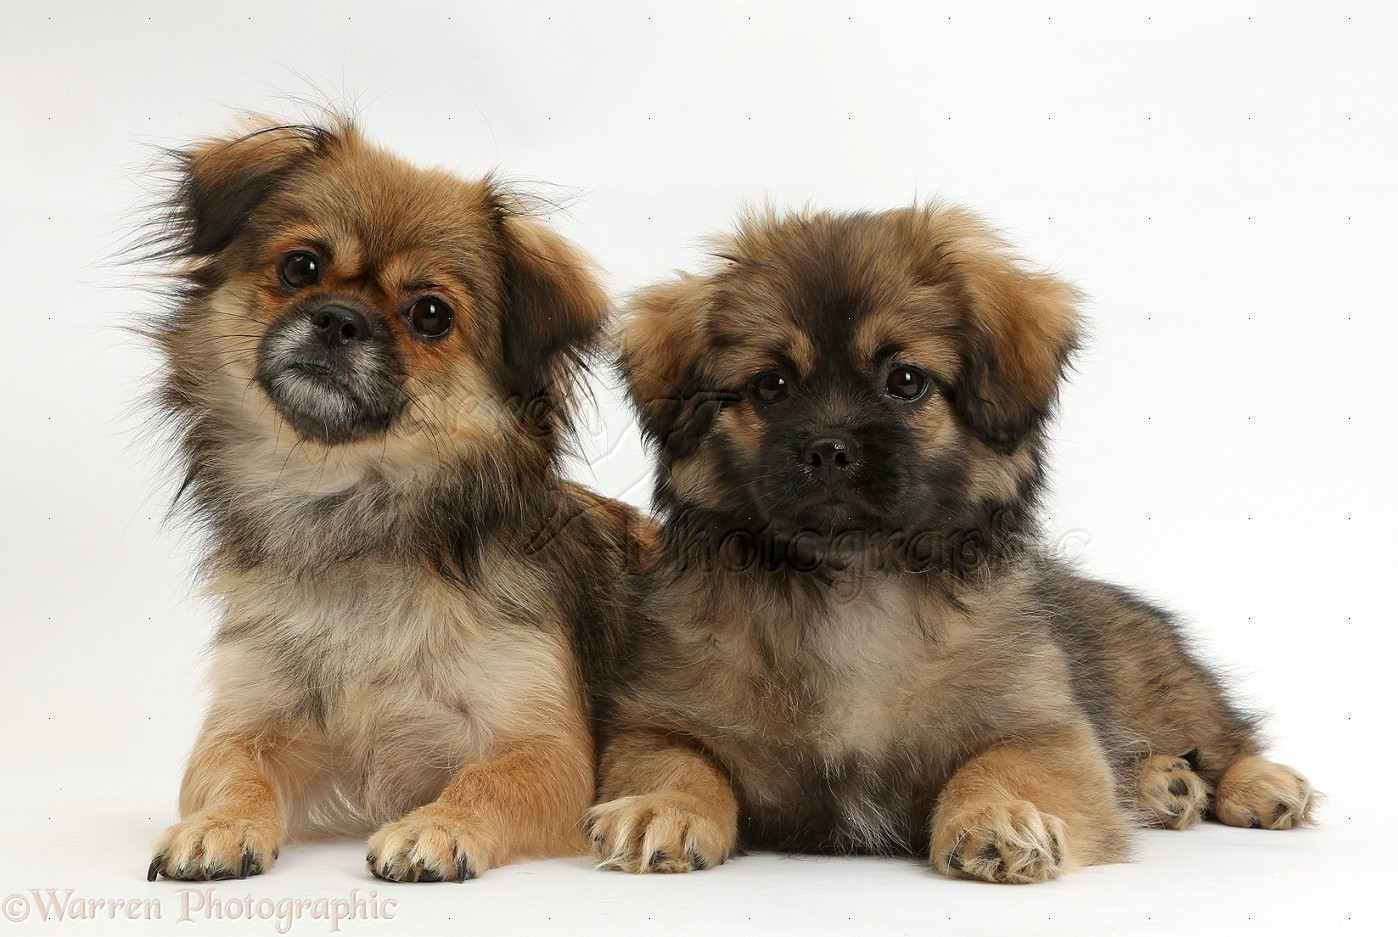 Dogs Tibetan Spaniel And Puppy Photo Wp38205